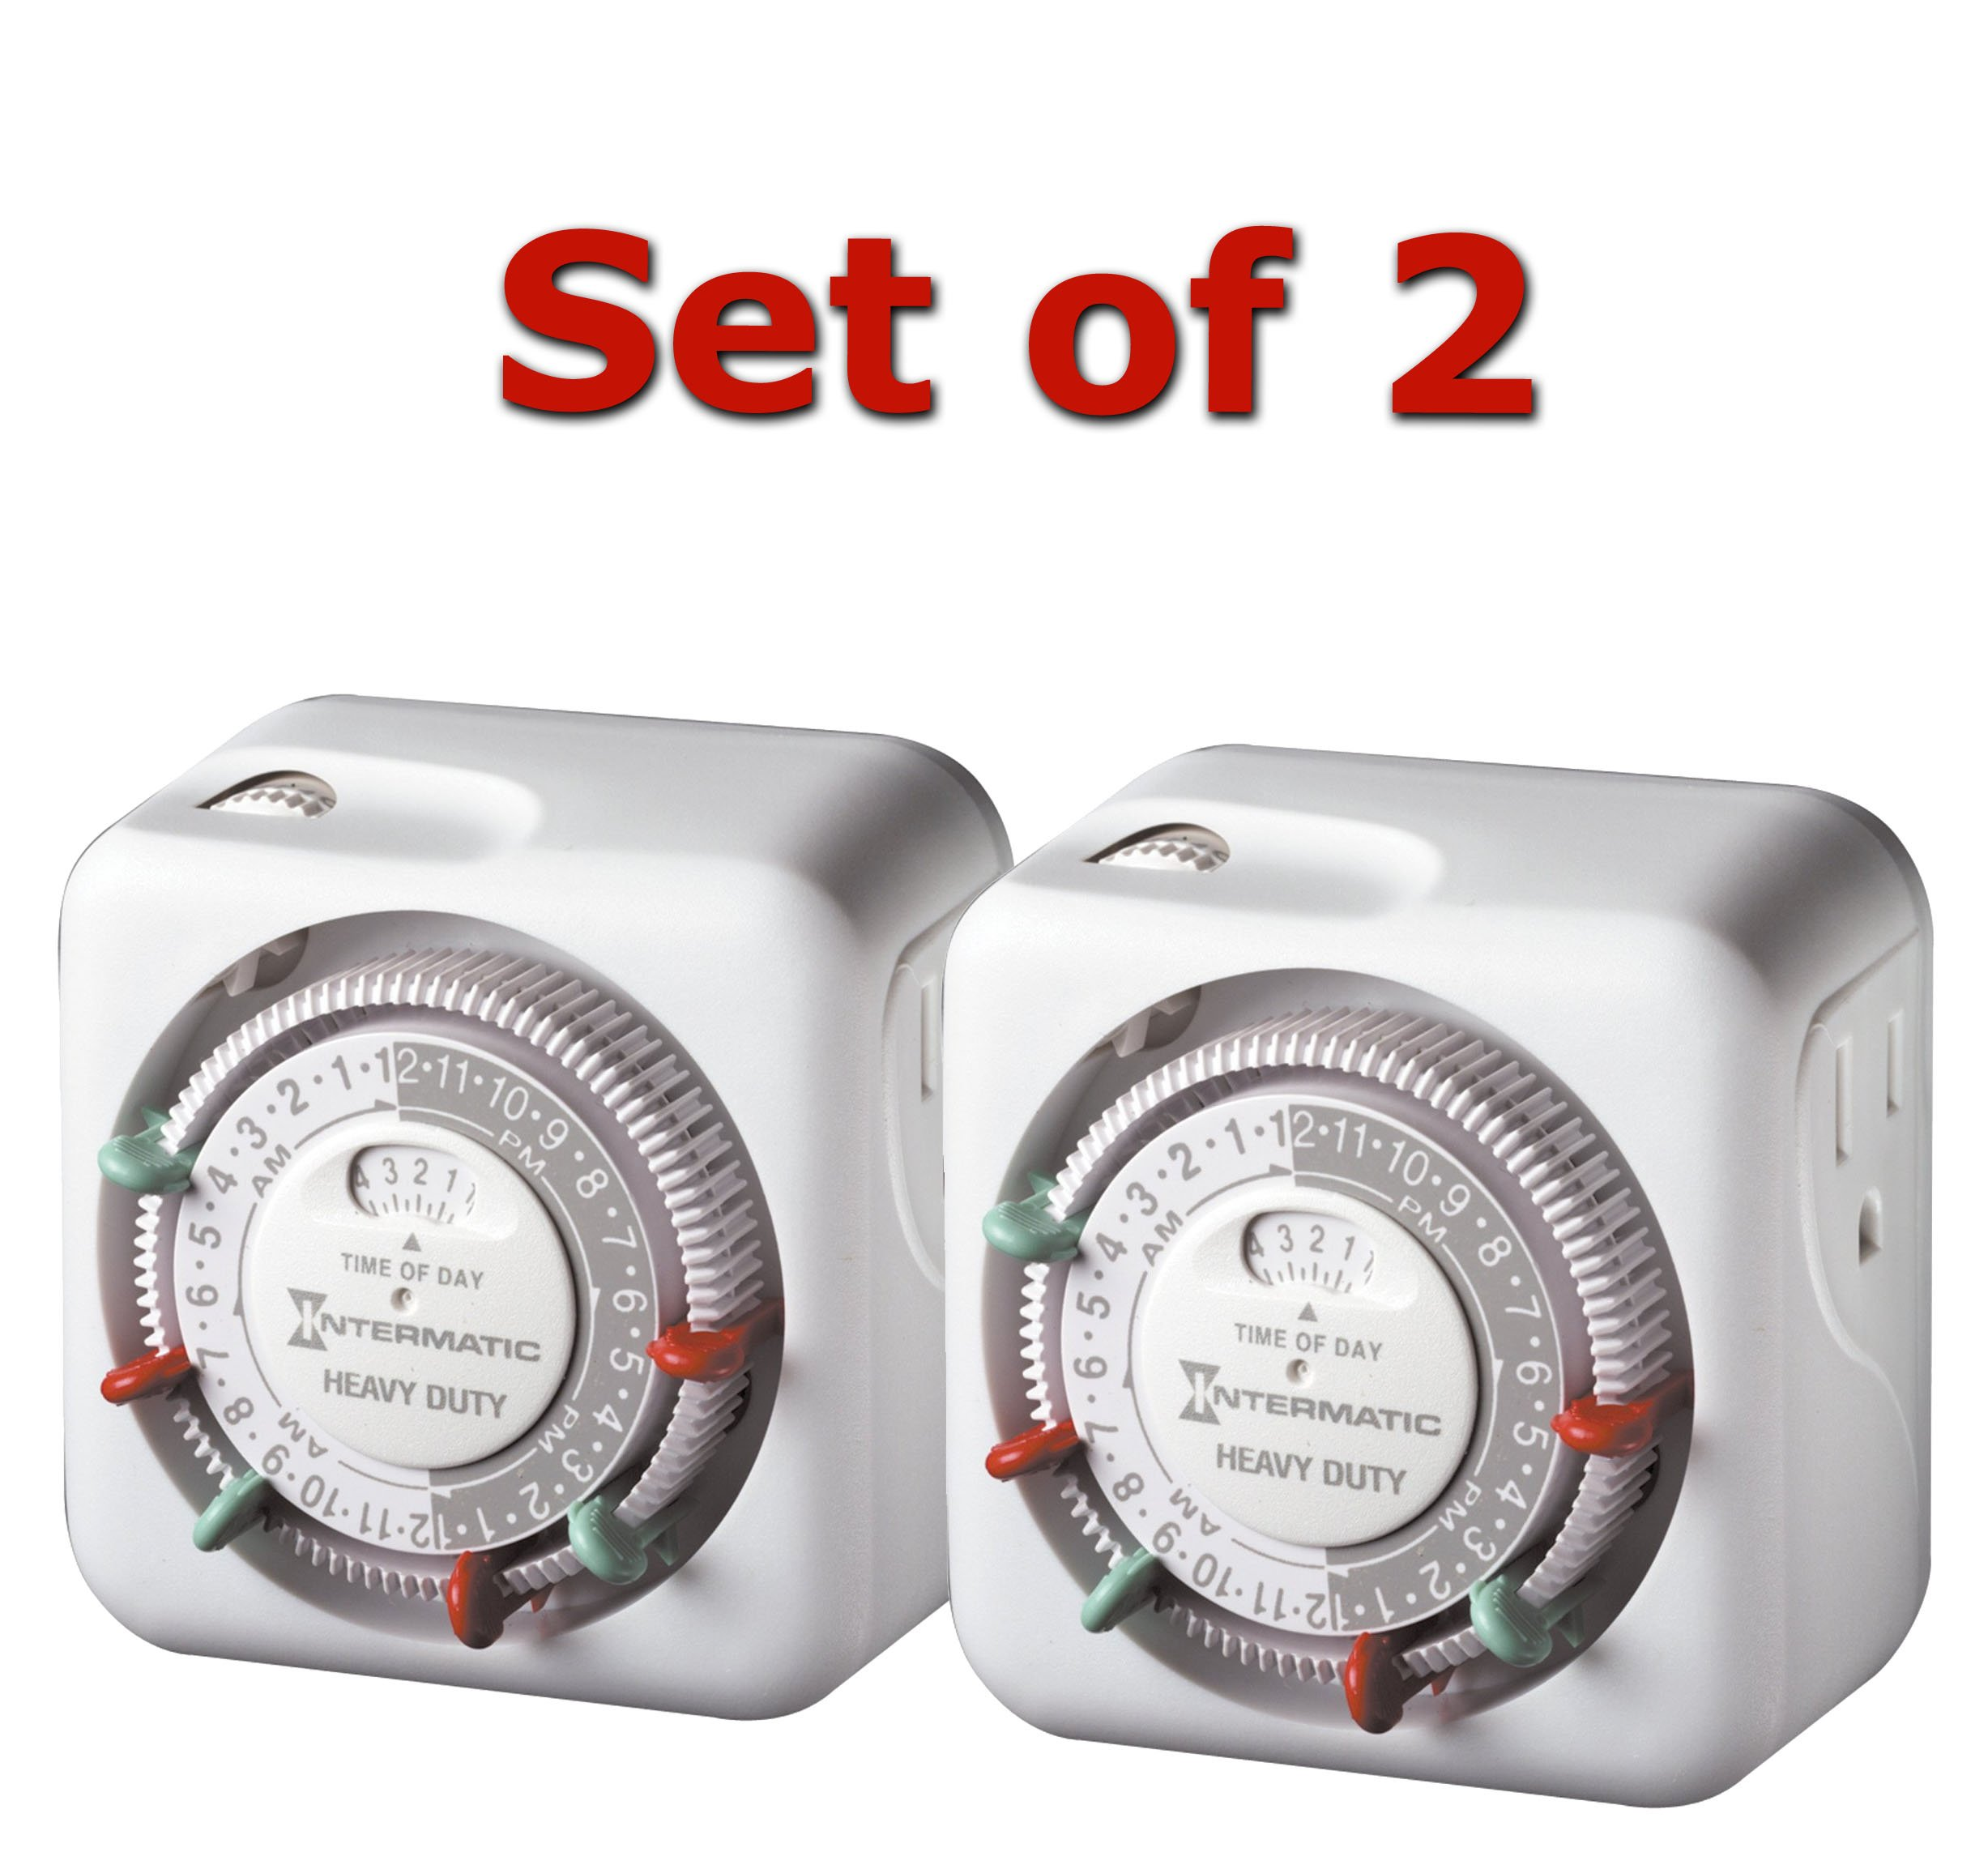 Intermatic TN311 15 Amp Heavy Duty Grounded Timer - 2-Pack by Intermatic